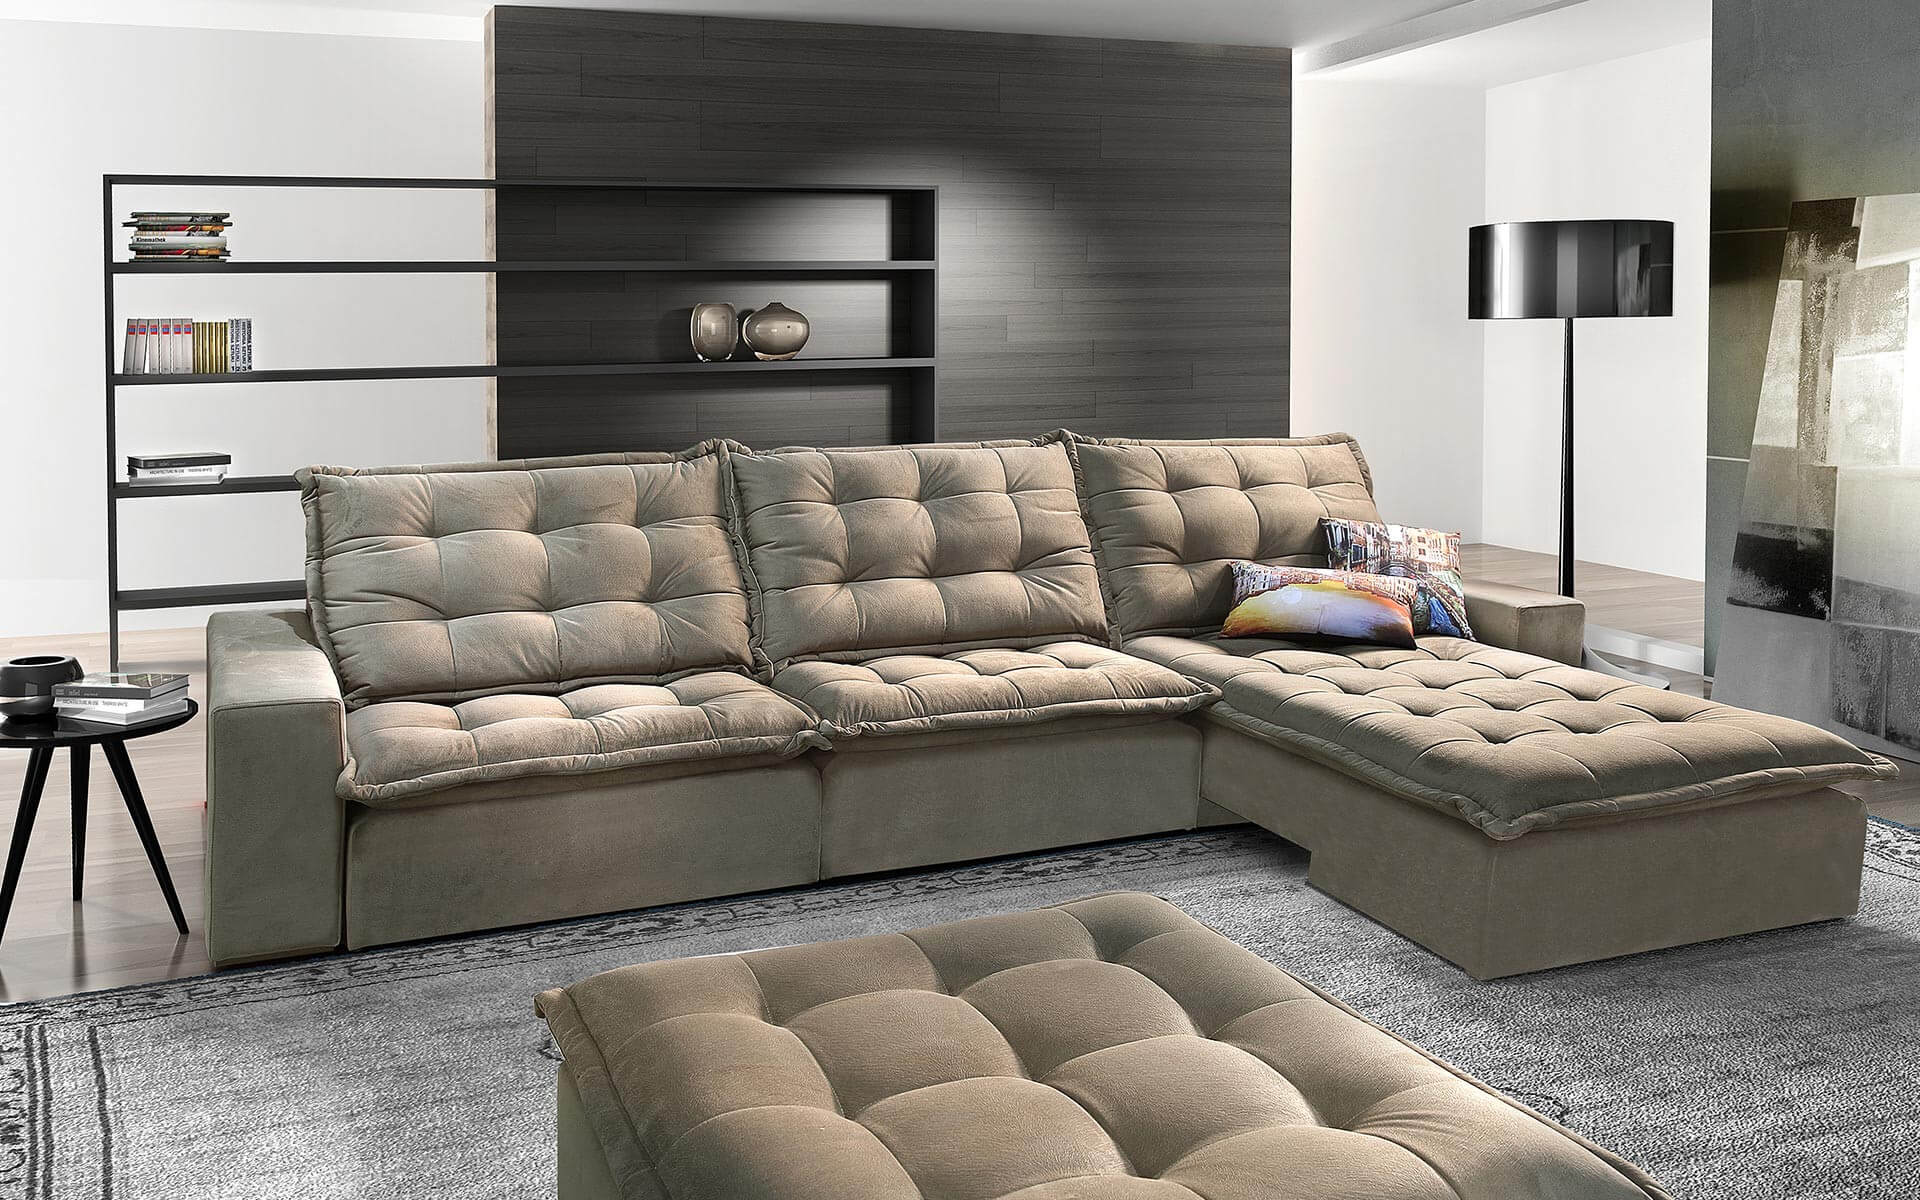 Sofa de canto 6 lugares retratil e reclinavel www for Sofa de canto 6 lugares